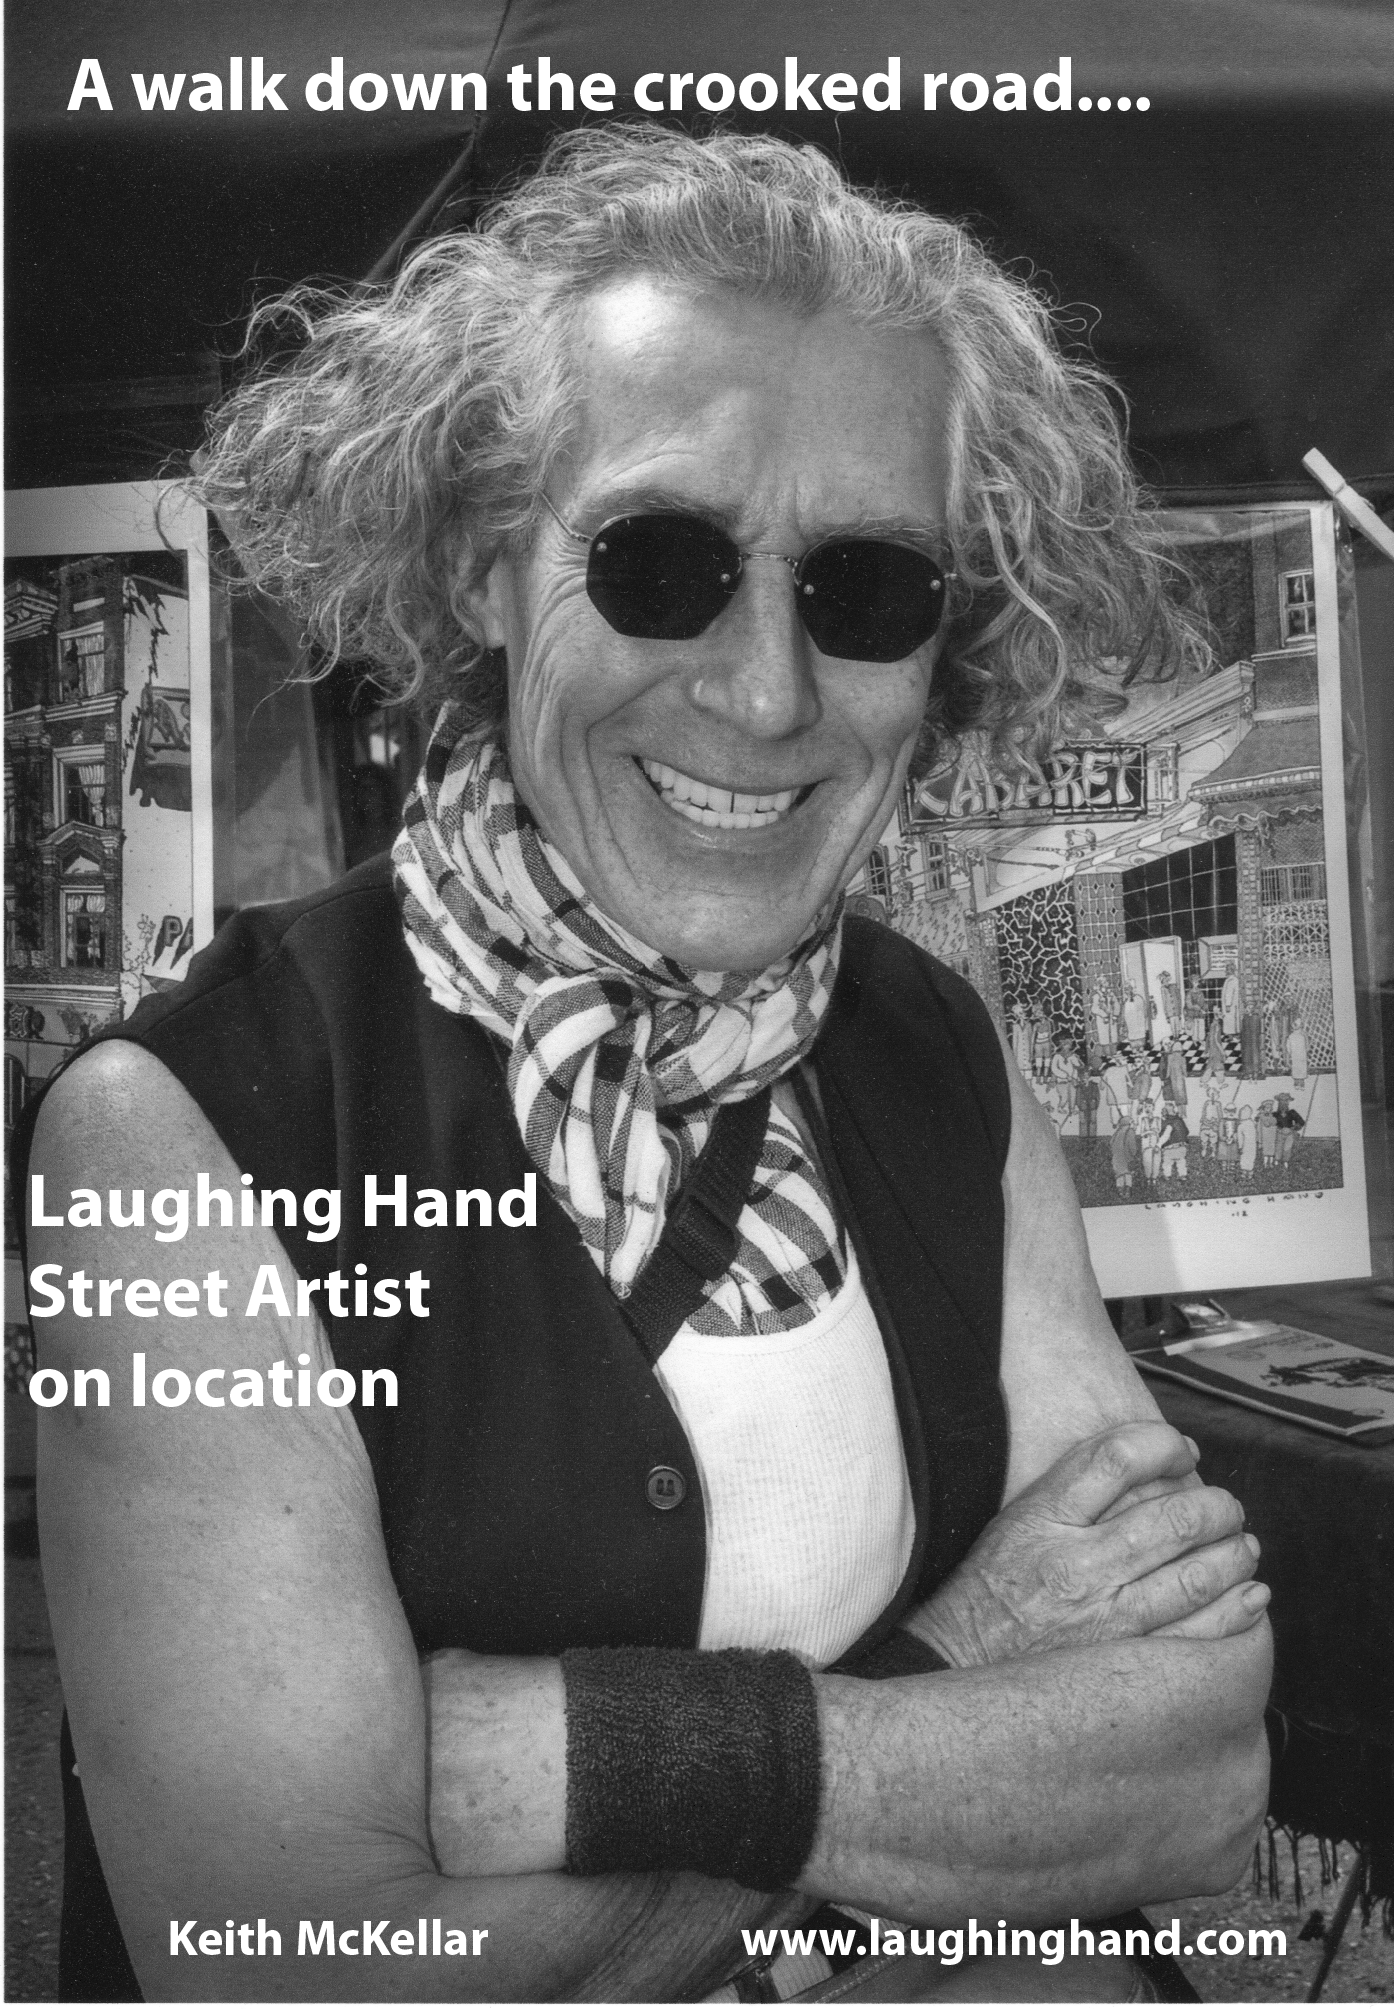 Laughing Hand Street Artist on Location